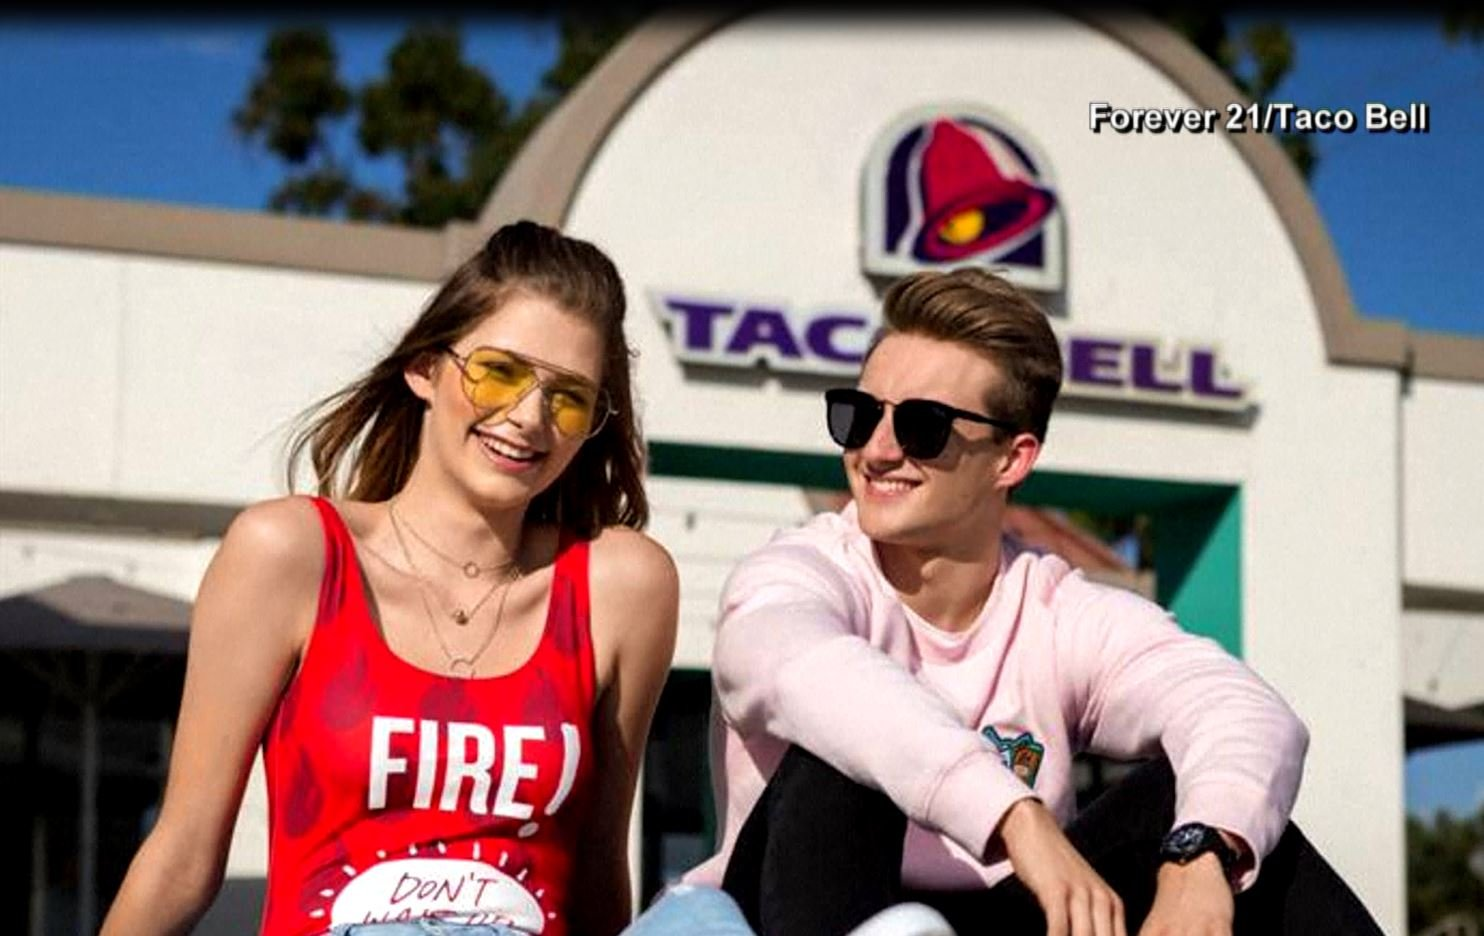 Forever 21, Taco Bell collaborate on new clothing collection